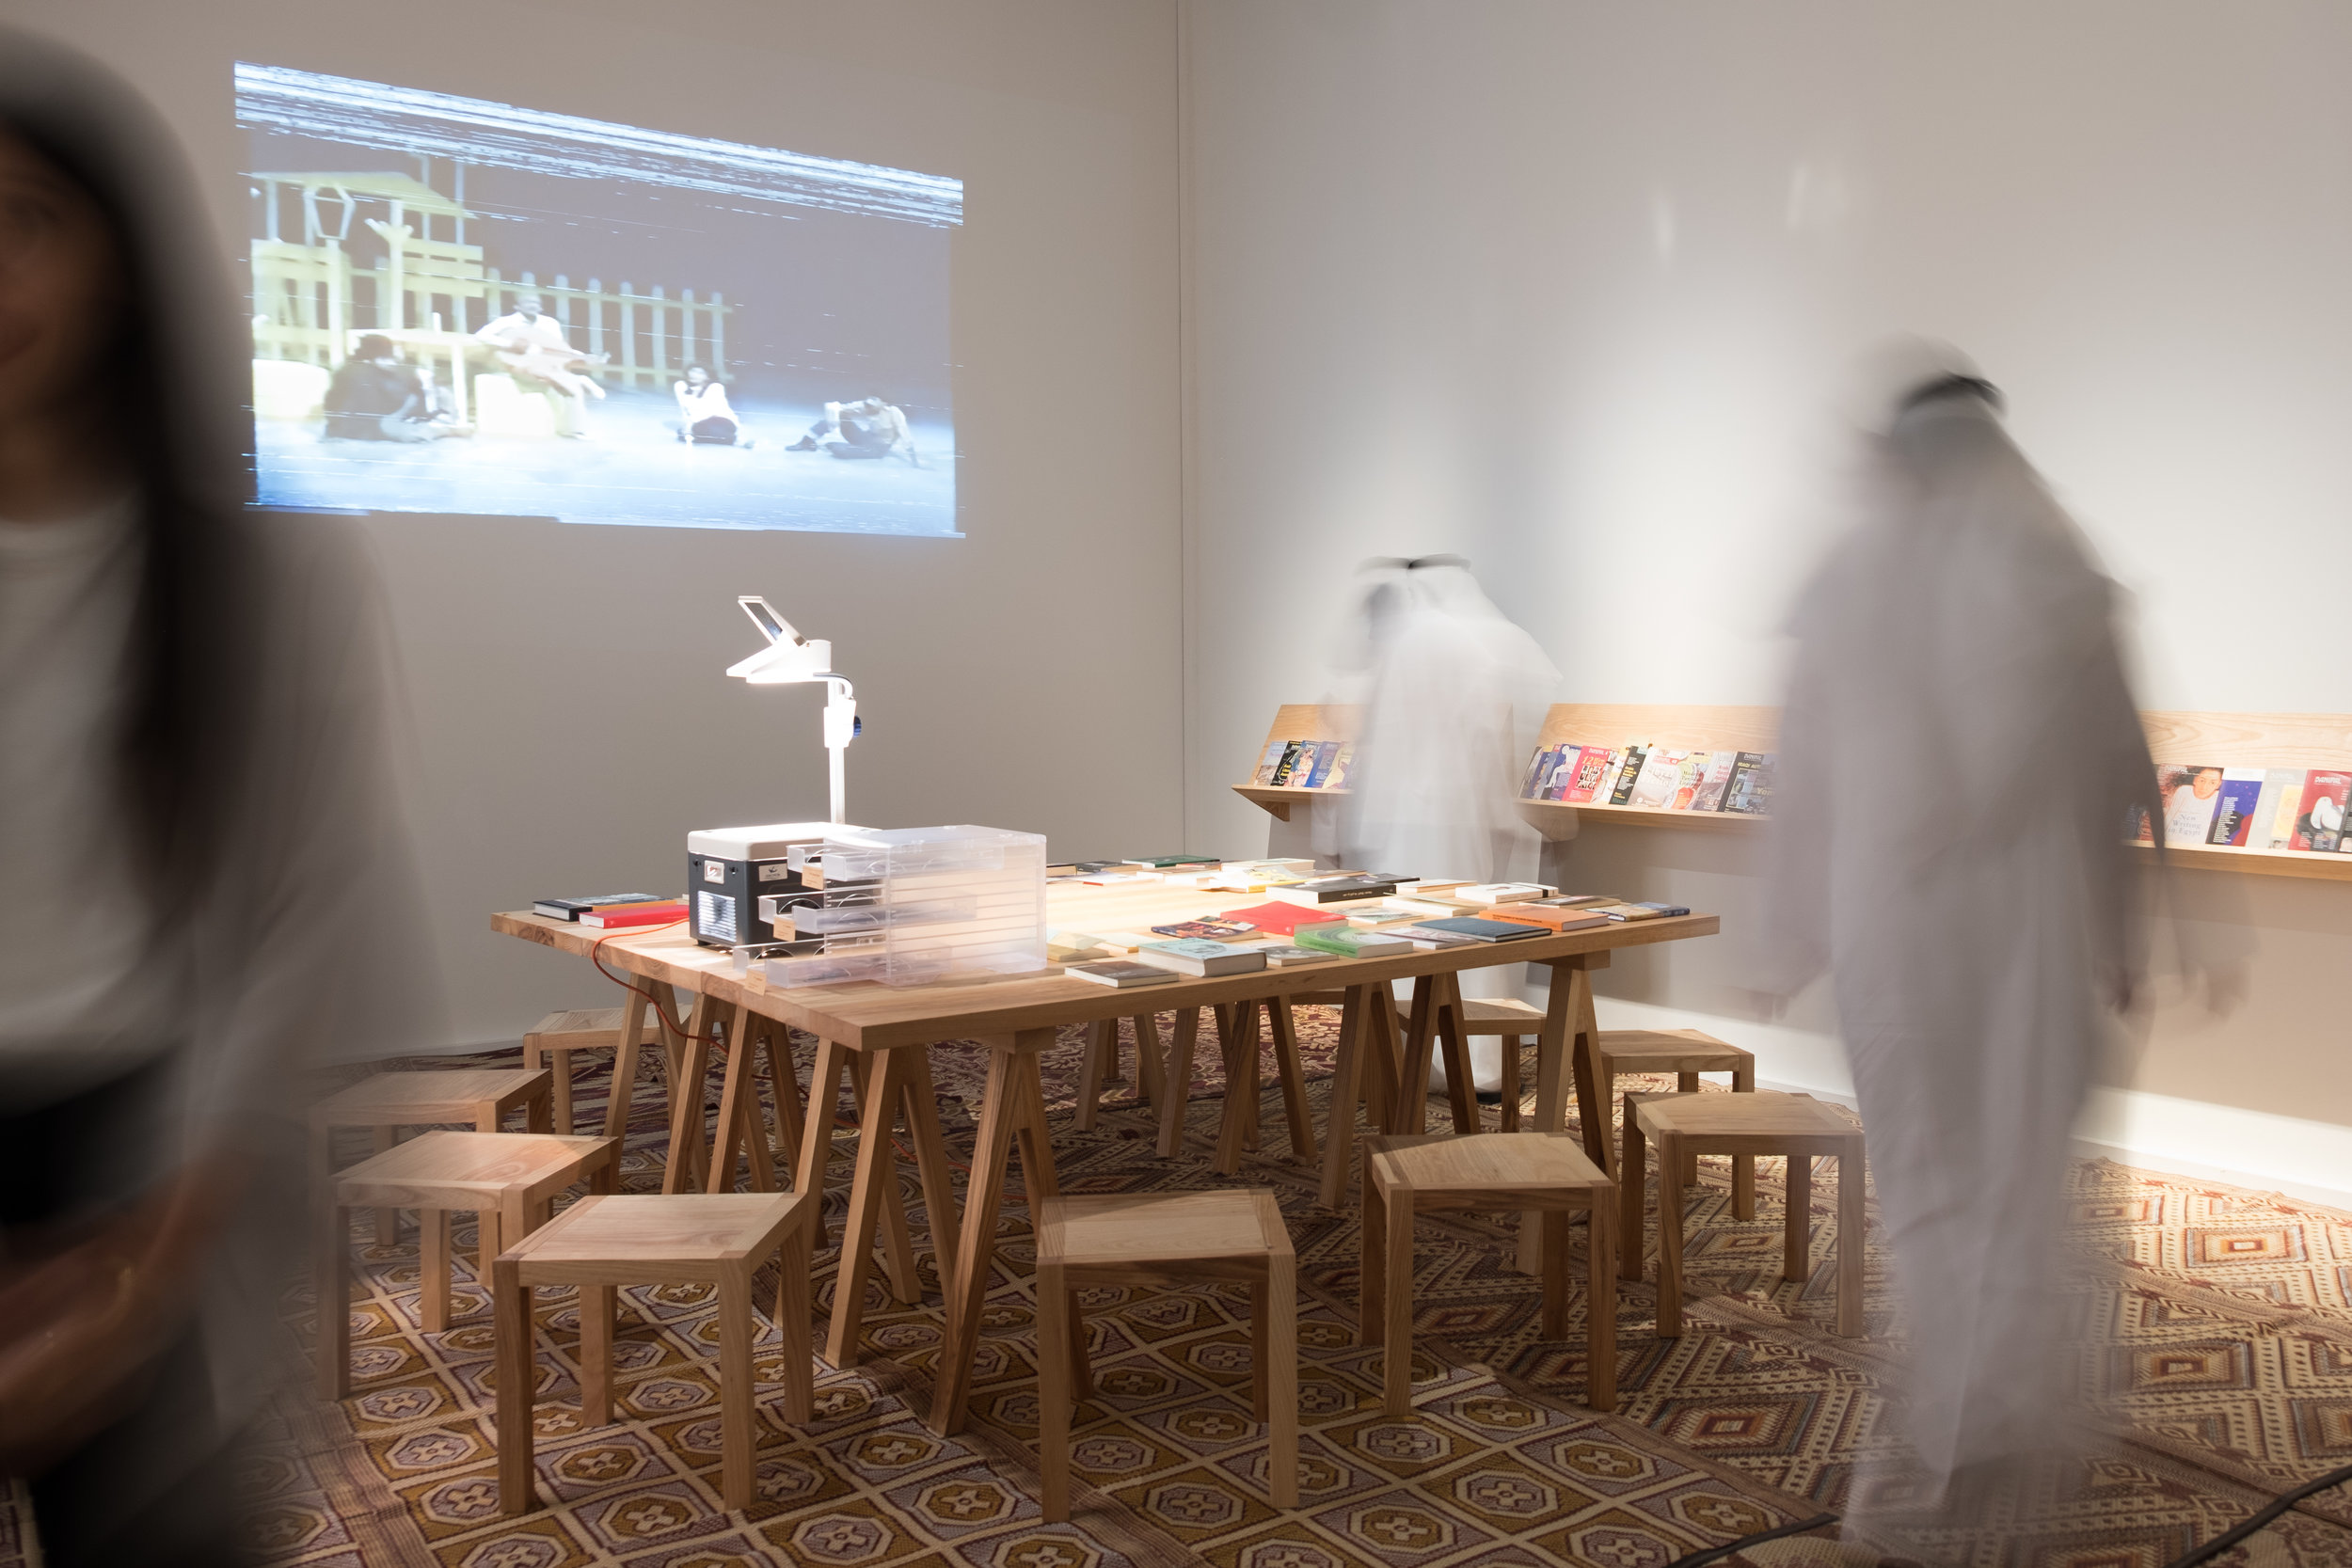 The reading annexe as part of the ongoing Research Studio currently on display at Art Jameel. Image courtesy of Art Jameel.